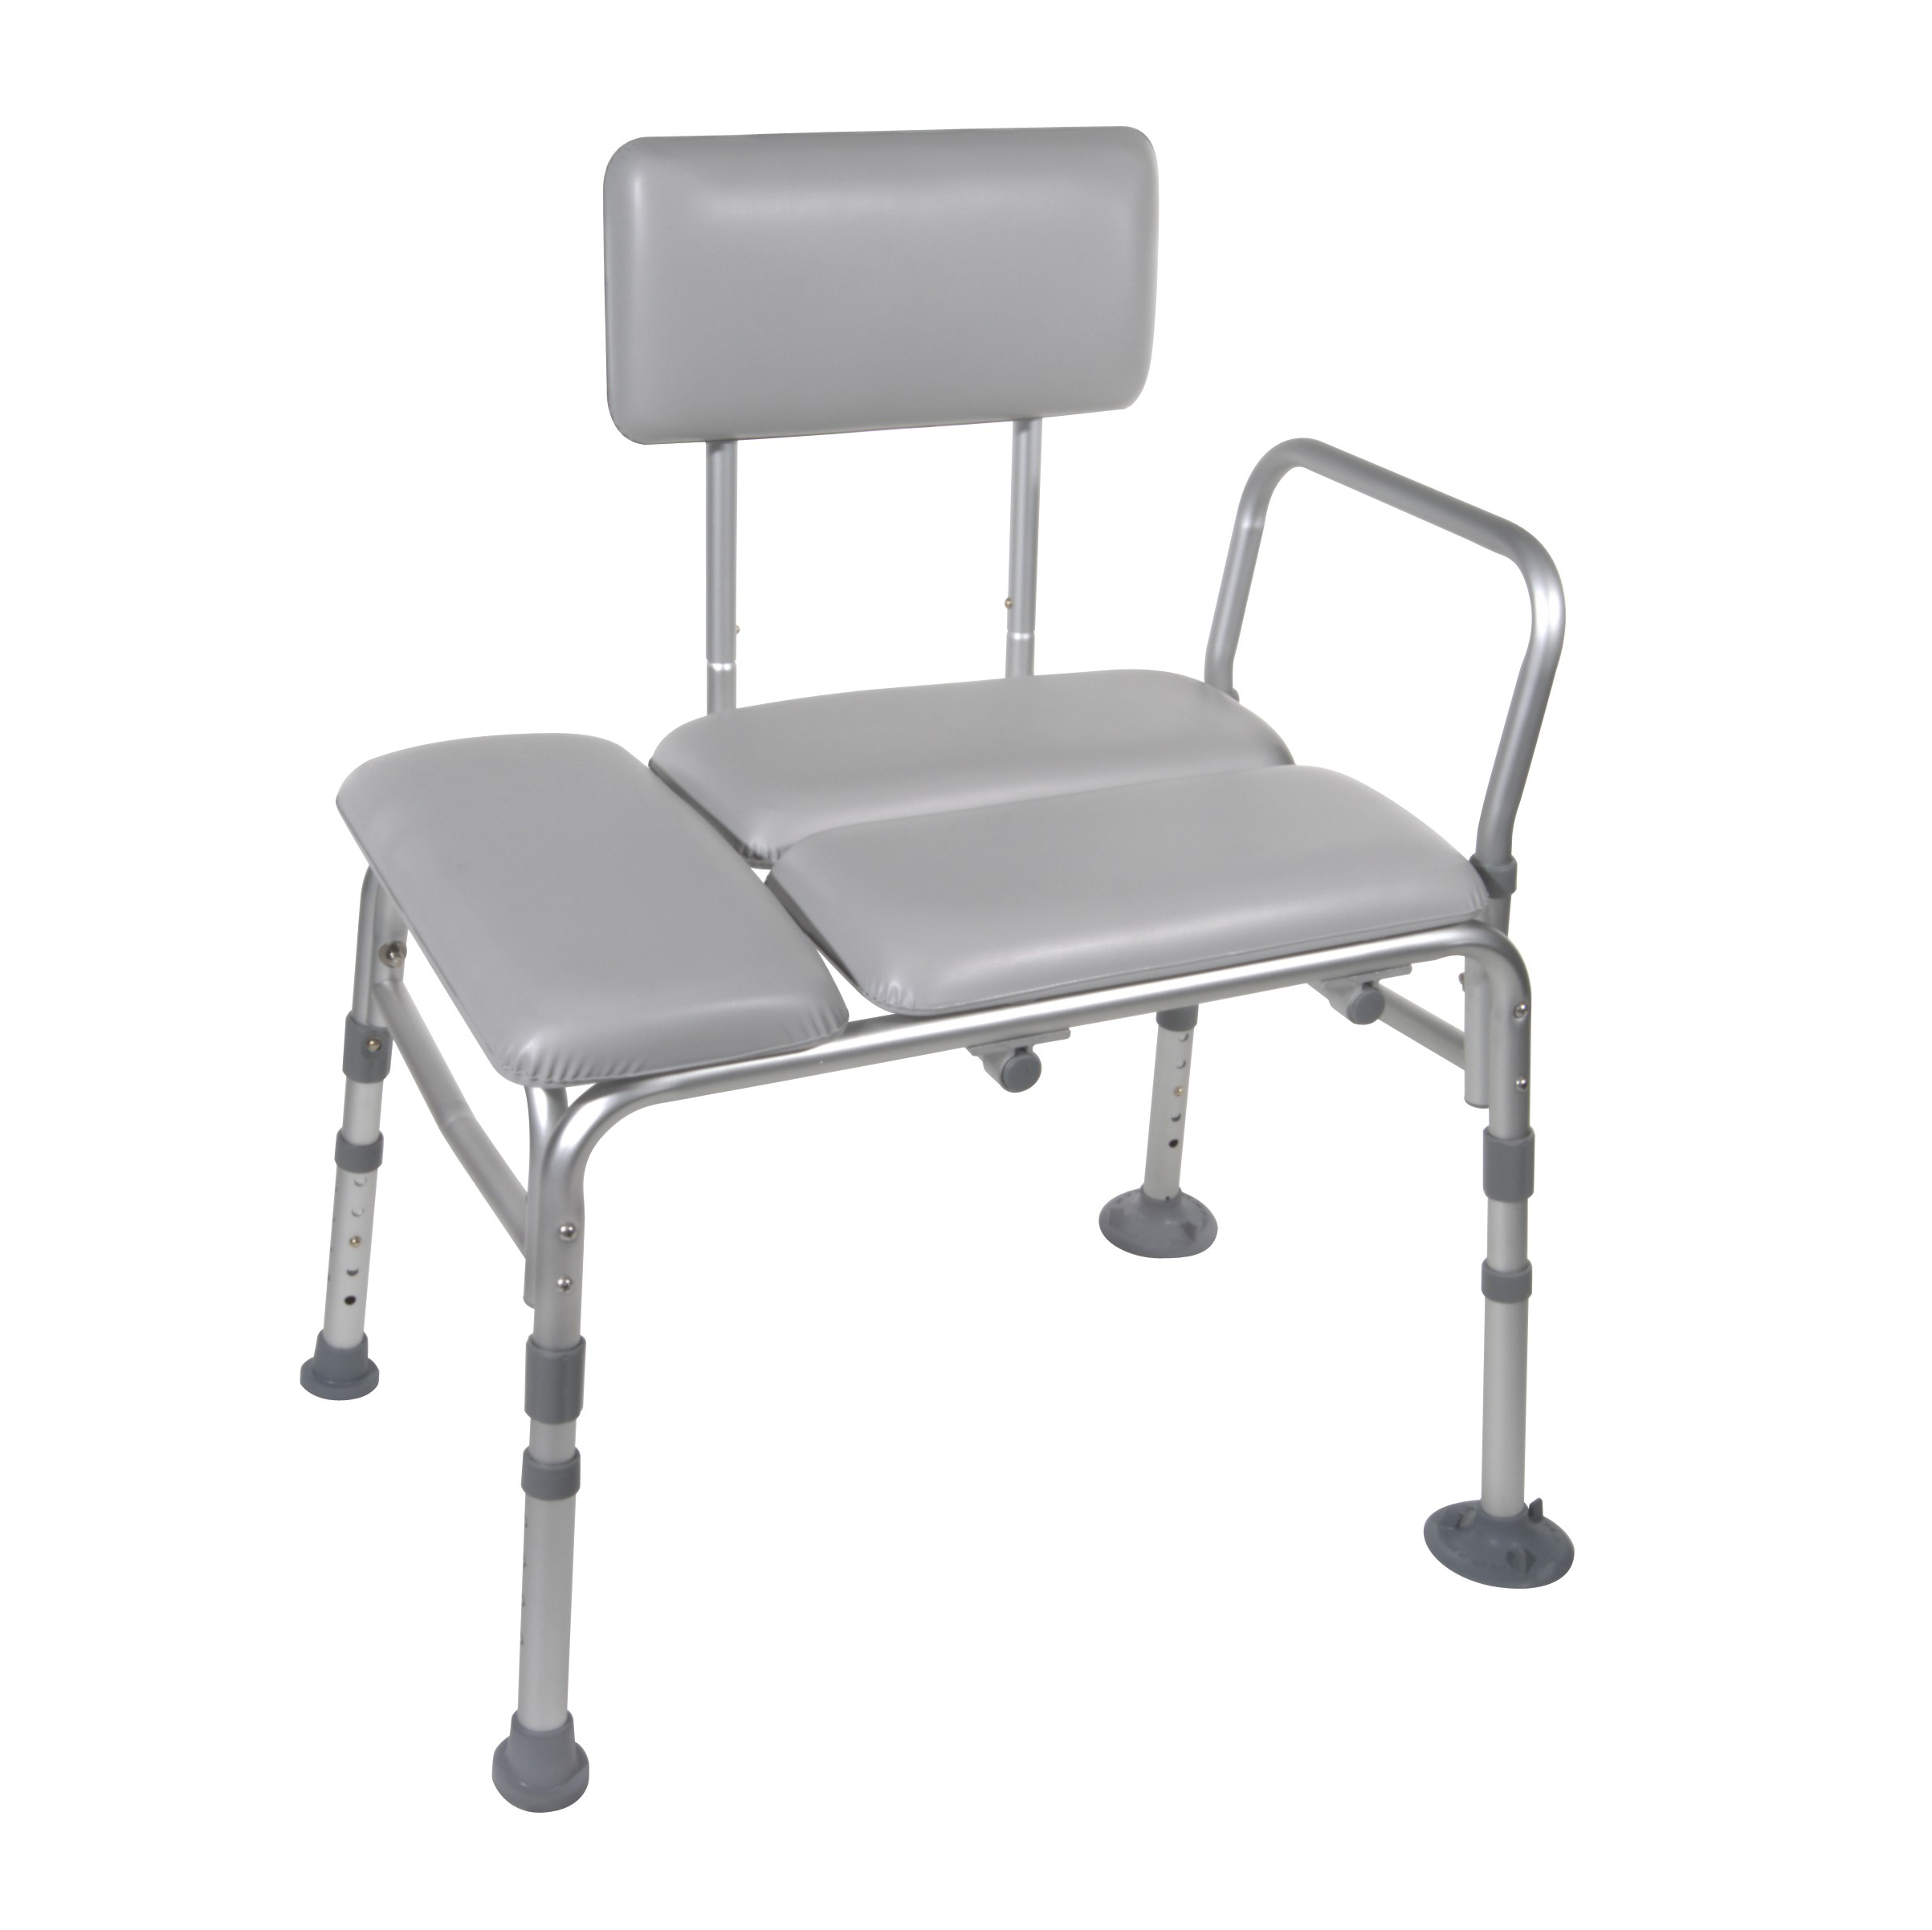 Padded Seat Transfer Bench – Genesis Medical Corporation